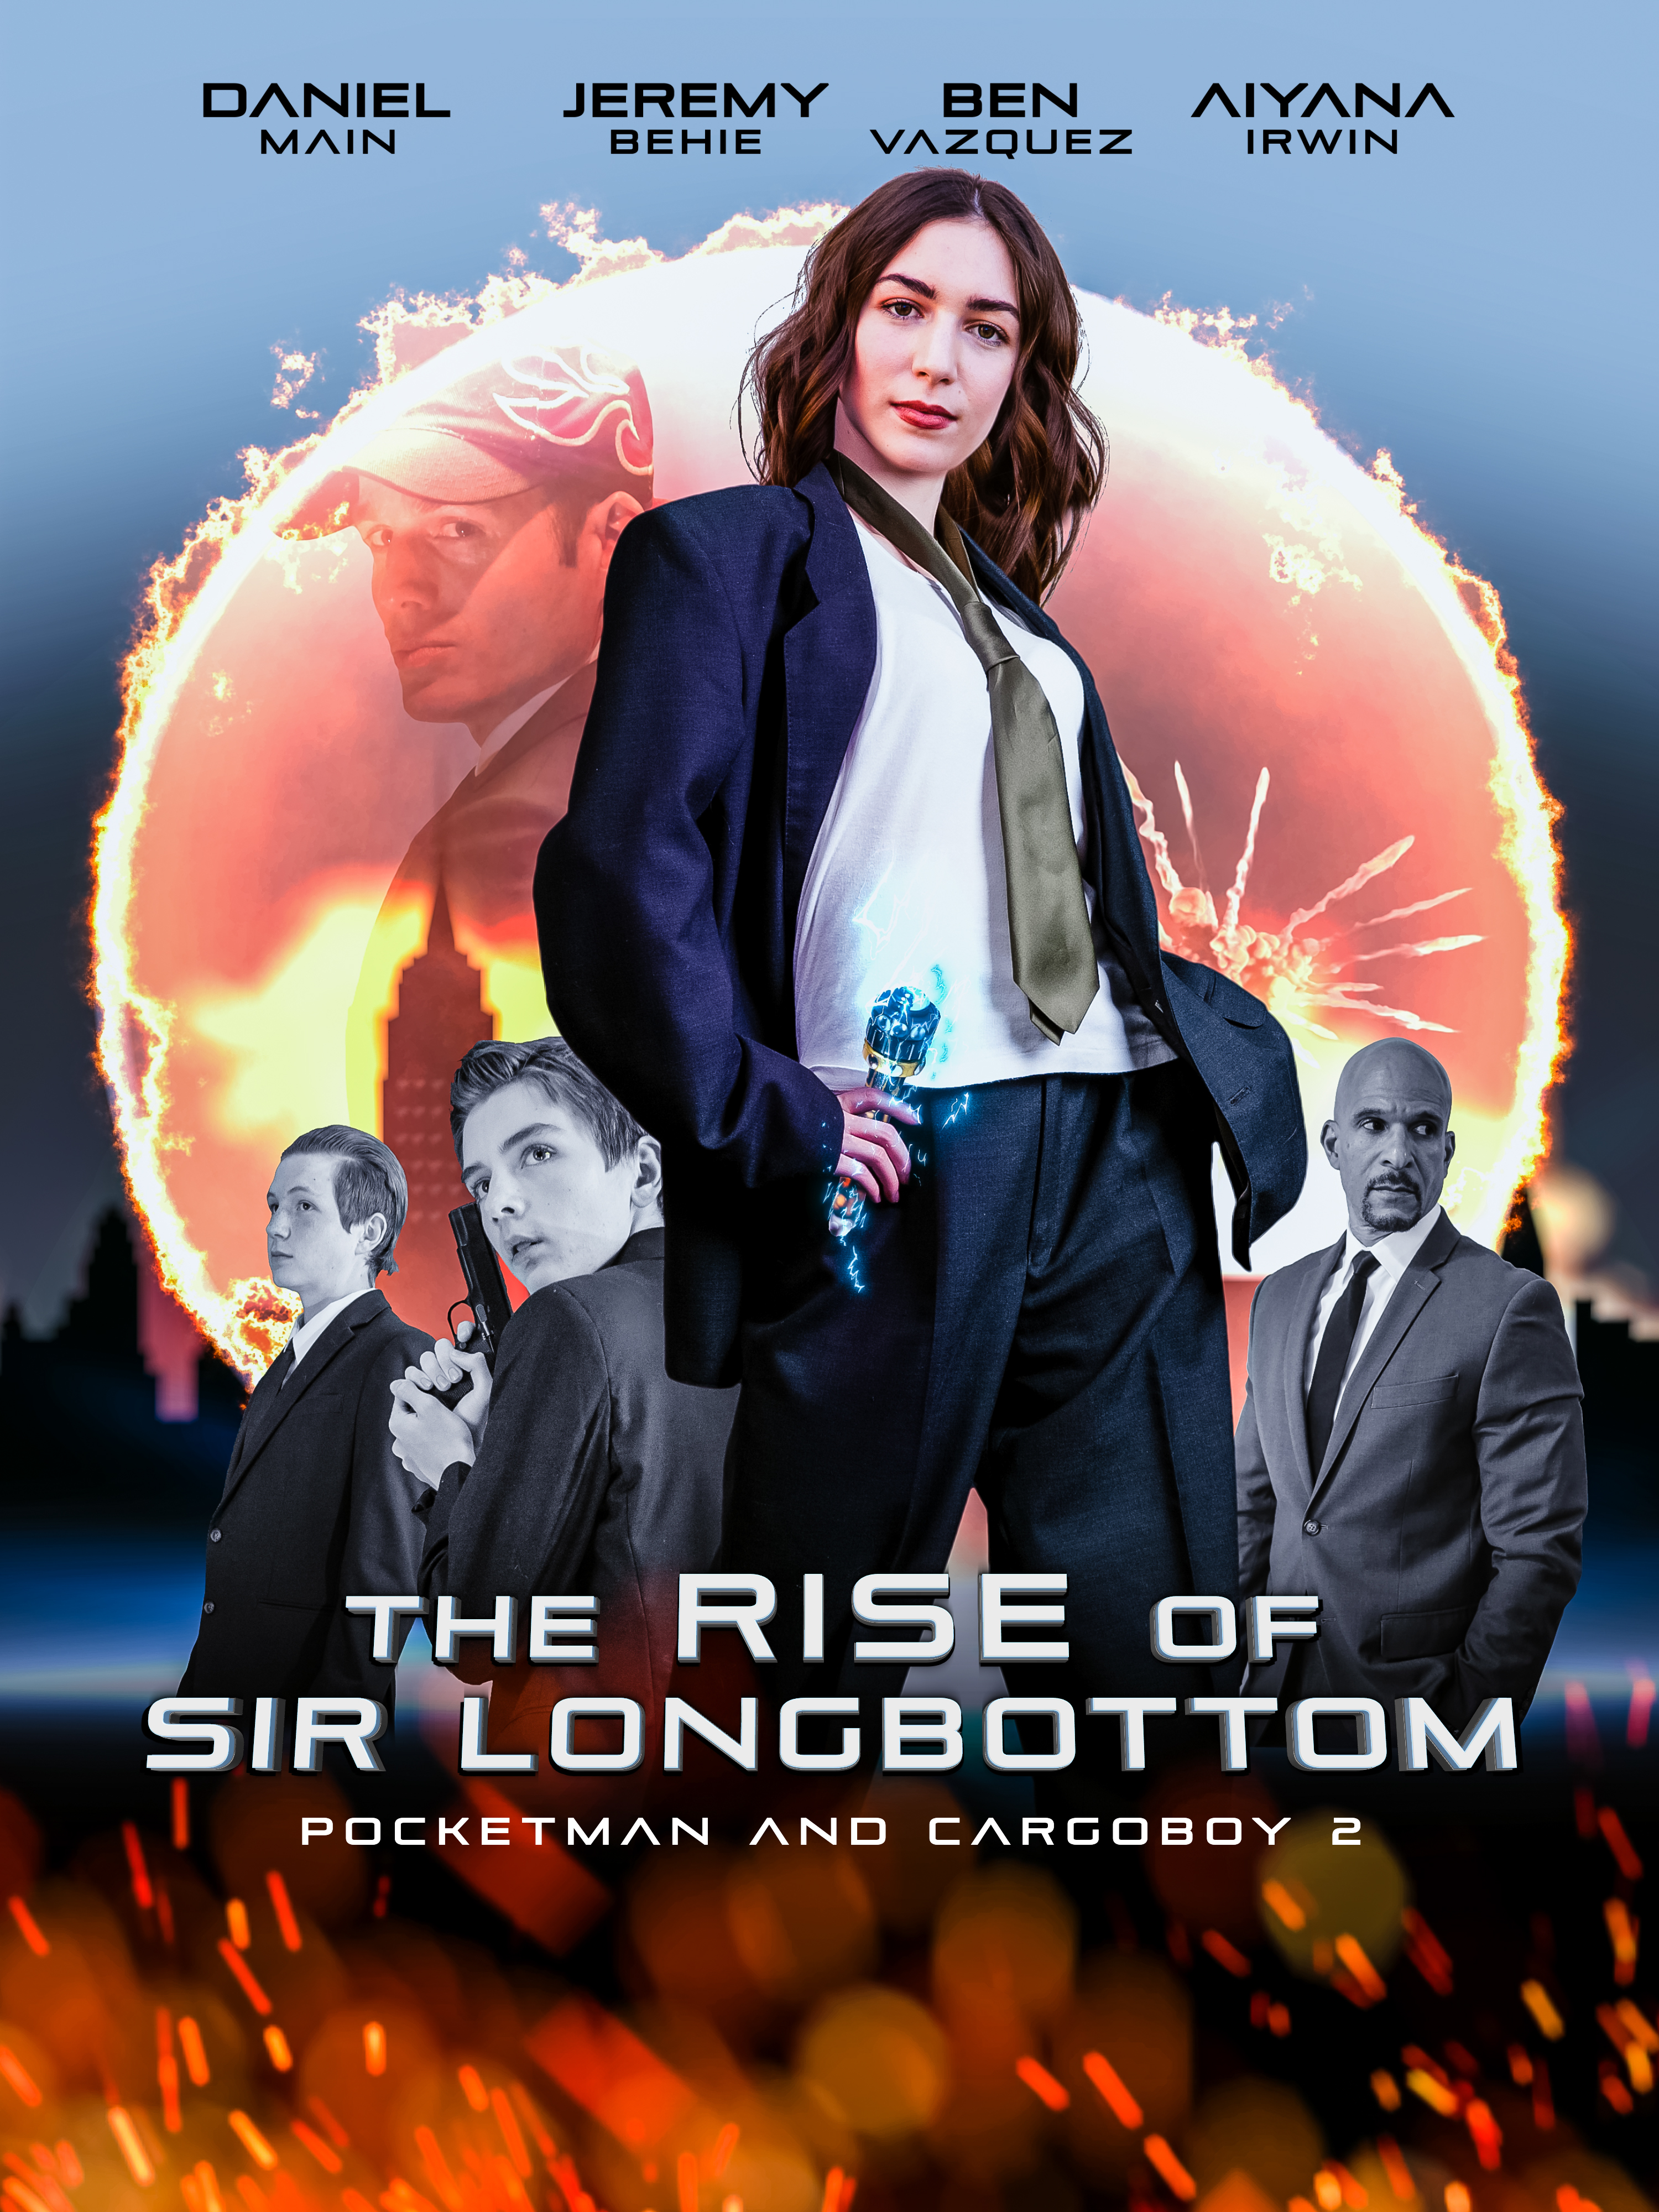 The Rise of Sir Longbottom 2021 English 1080p HDRip ESubs 1.2GB Download